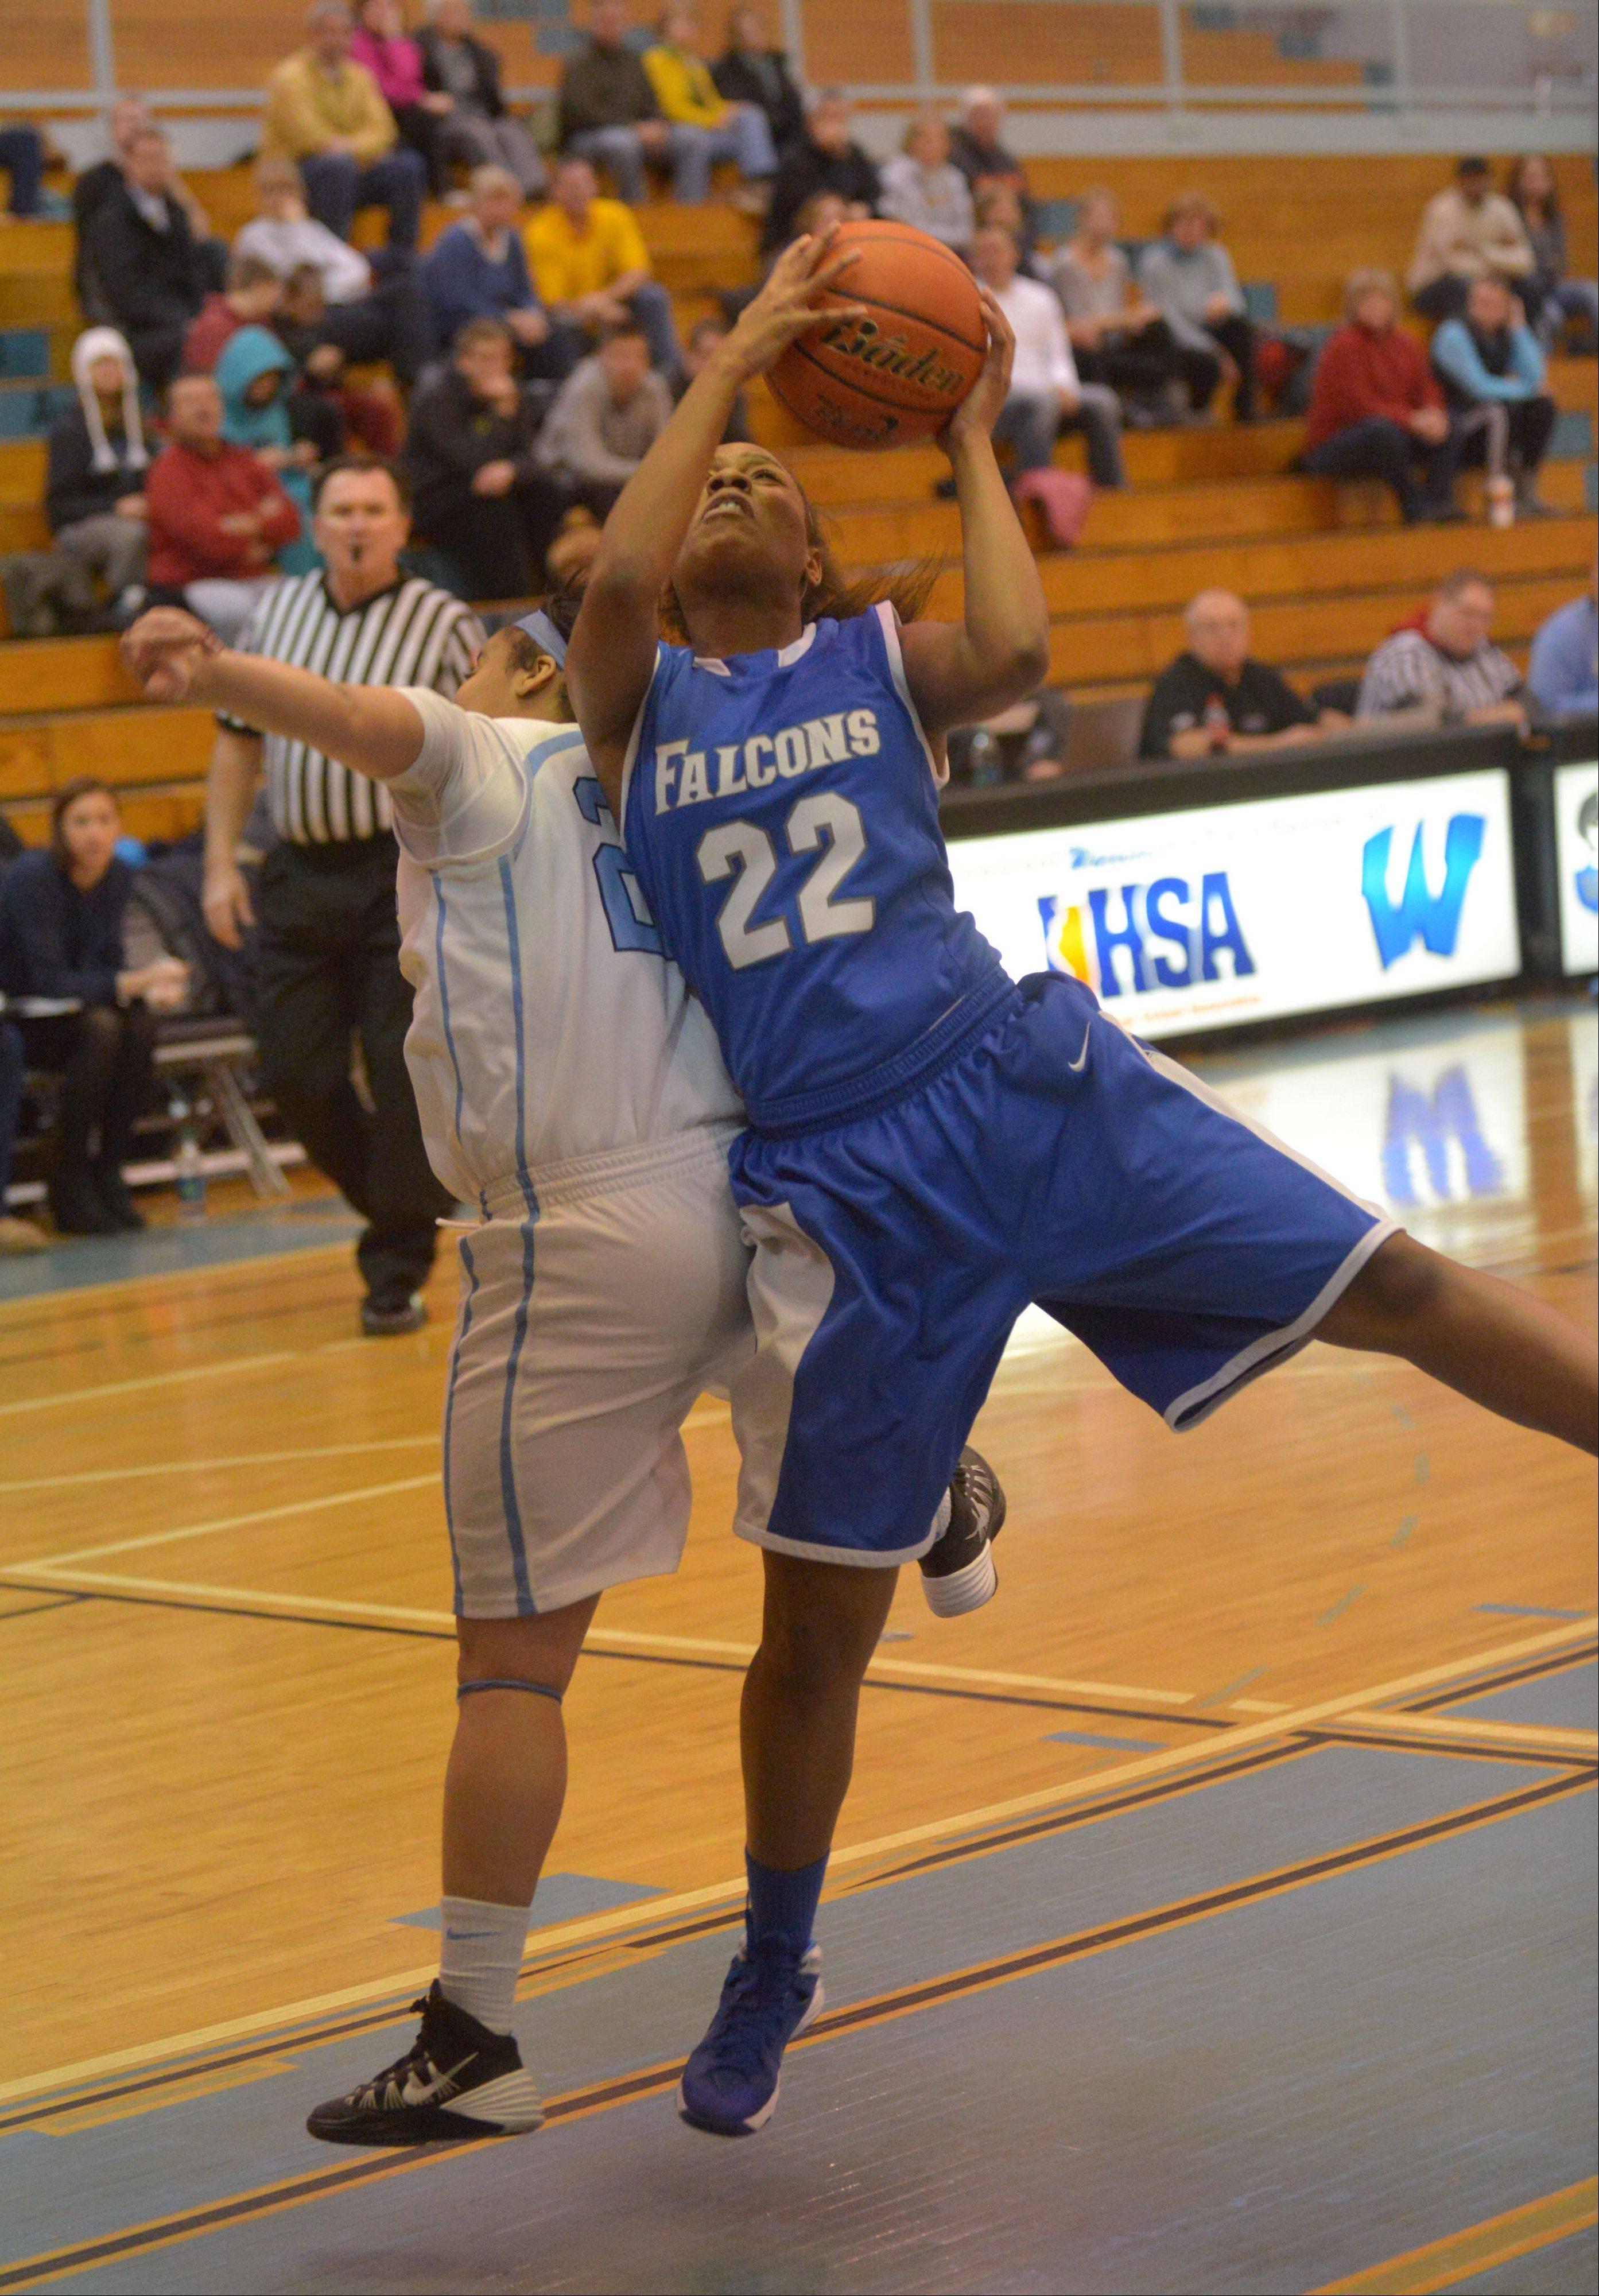 Photos from the Hillcrest vs. Wheaton North basketball game Saturday, Jan. 18 at Willowbrook High School in Villa Park.